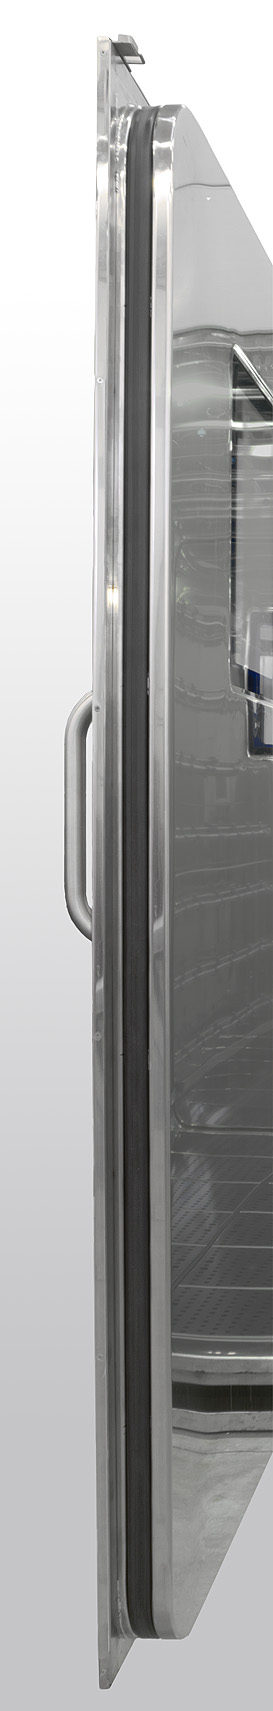 DeconLock inflatable gasket door.jpg